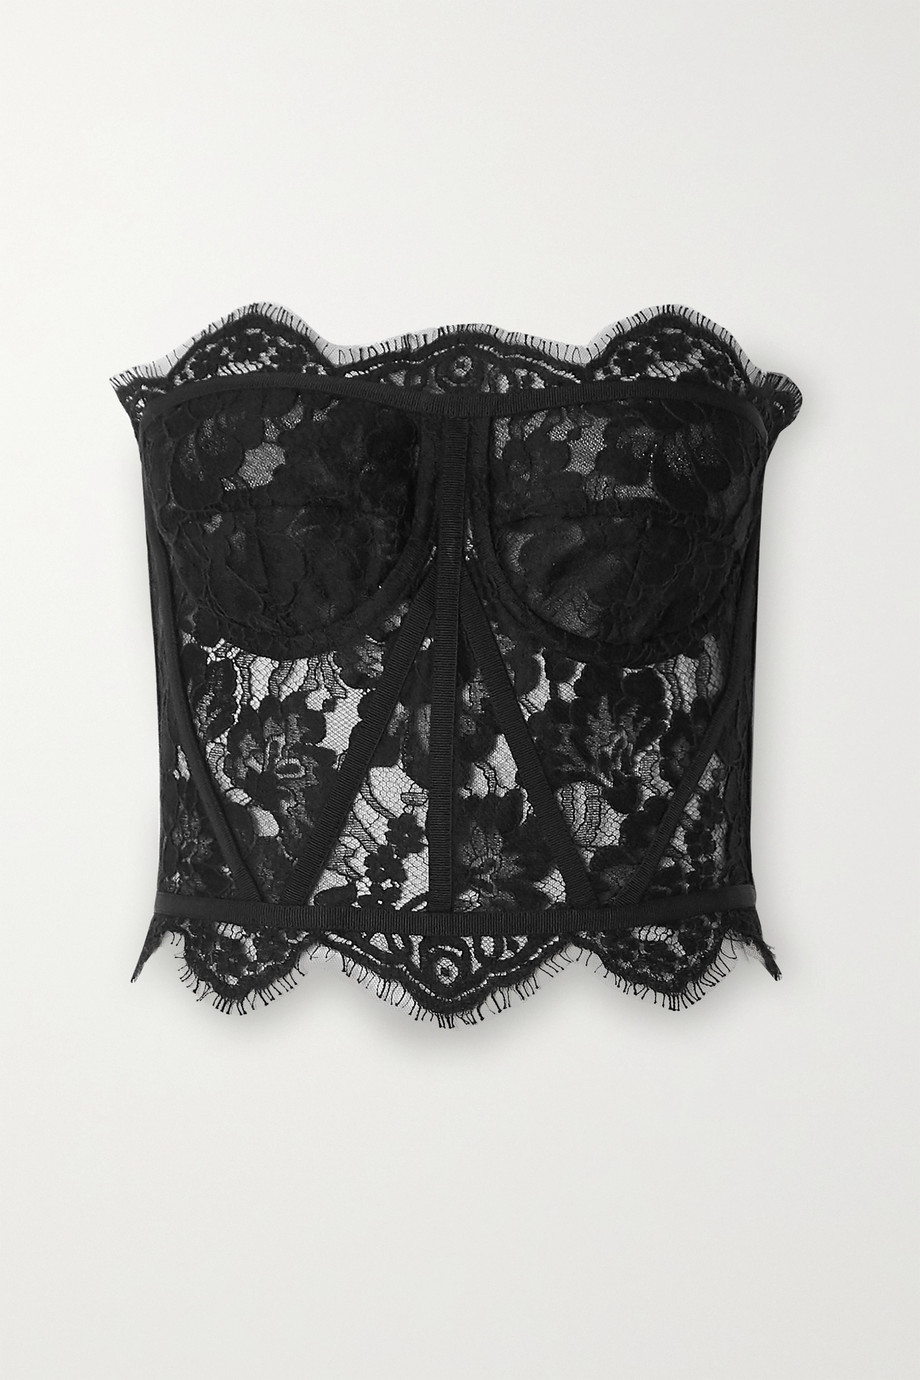 Dolce & Gabbana Grosgrain-trimmed lace bustier top